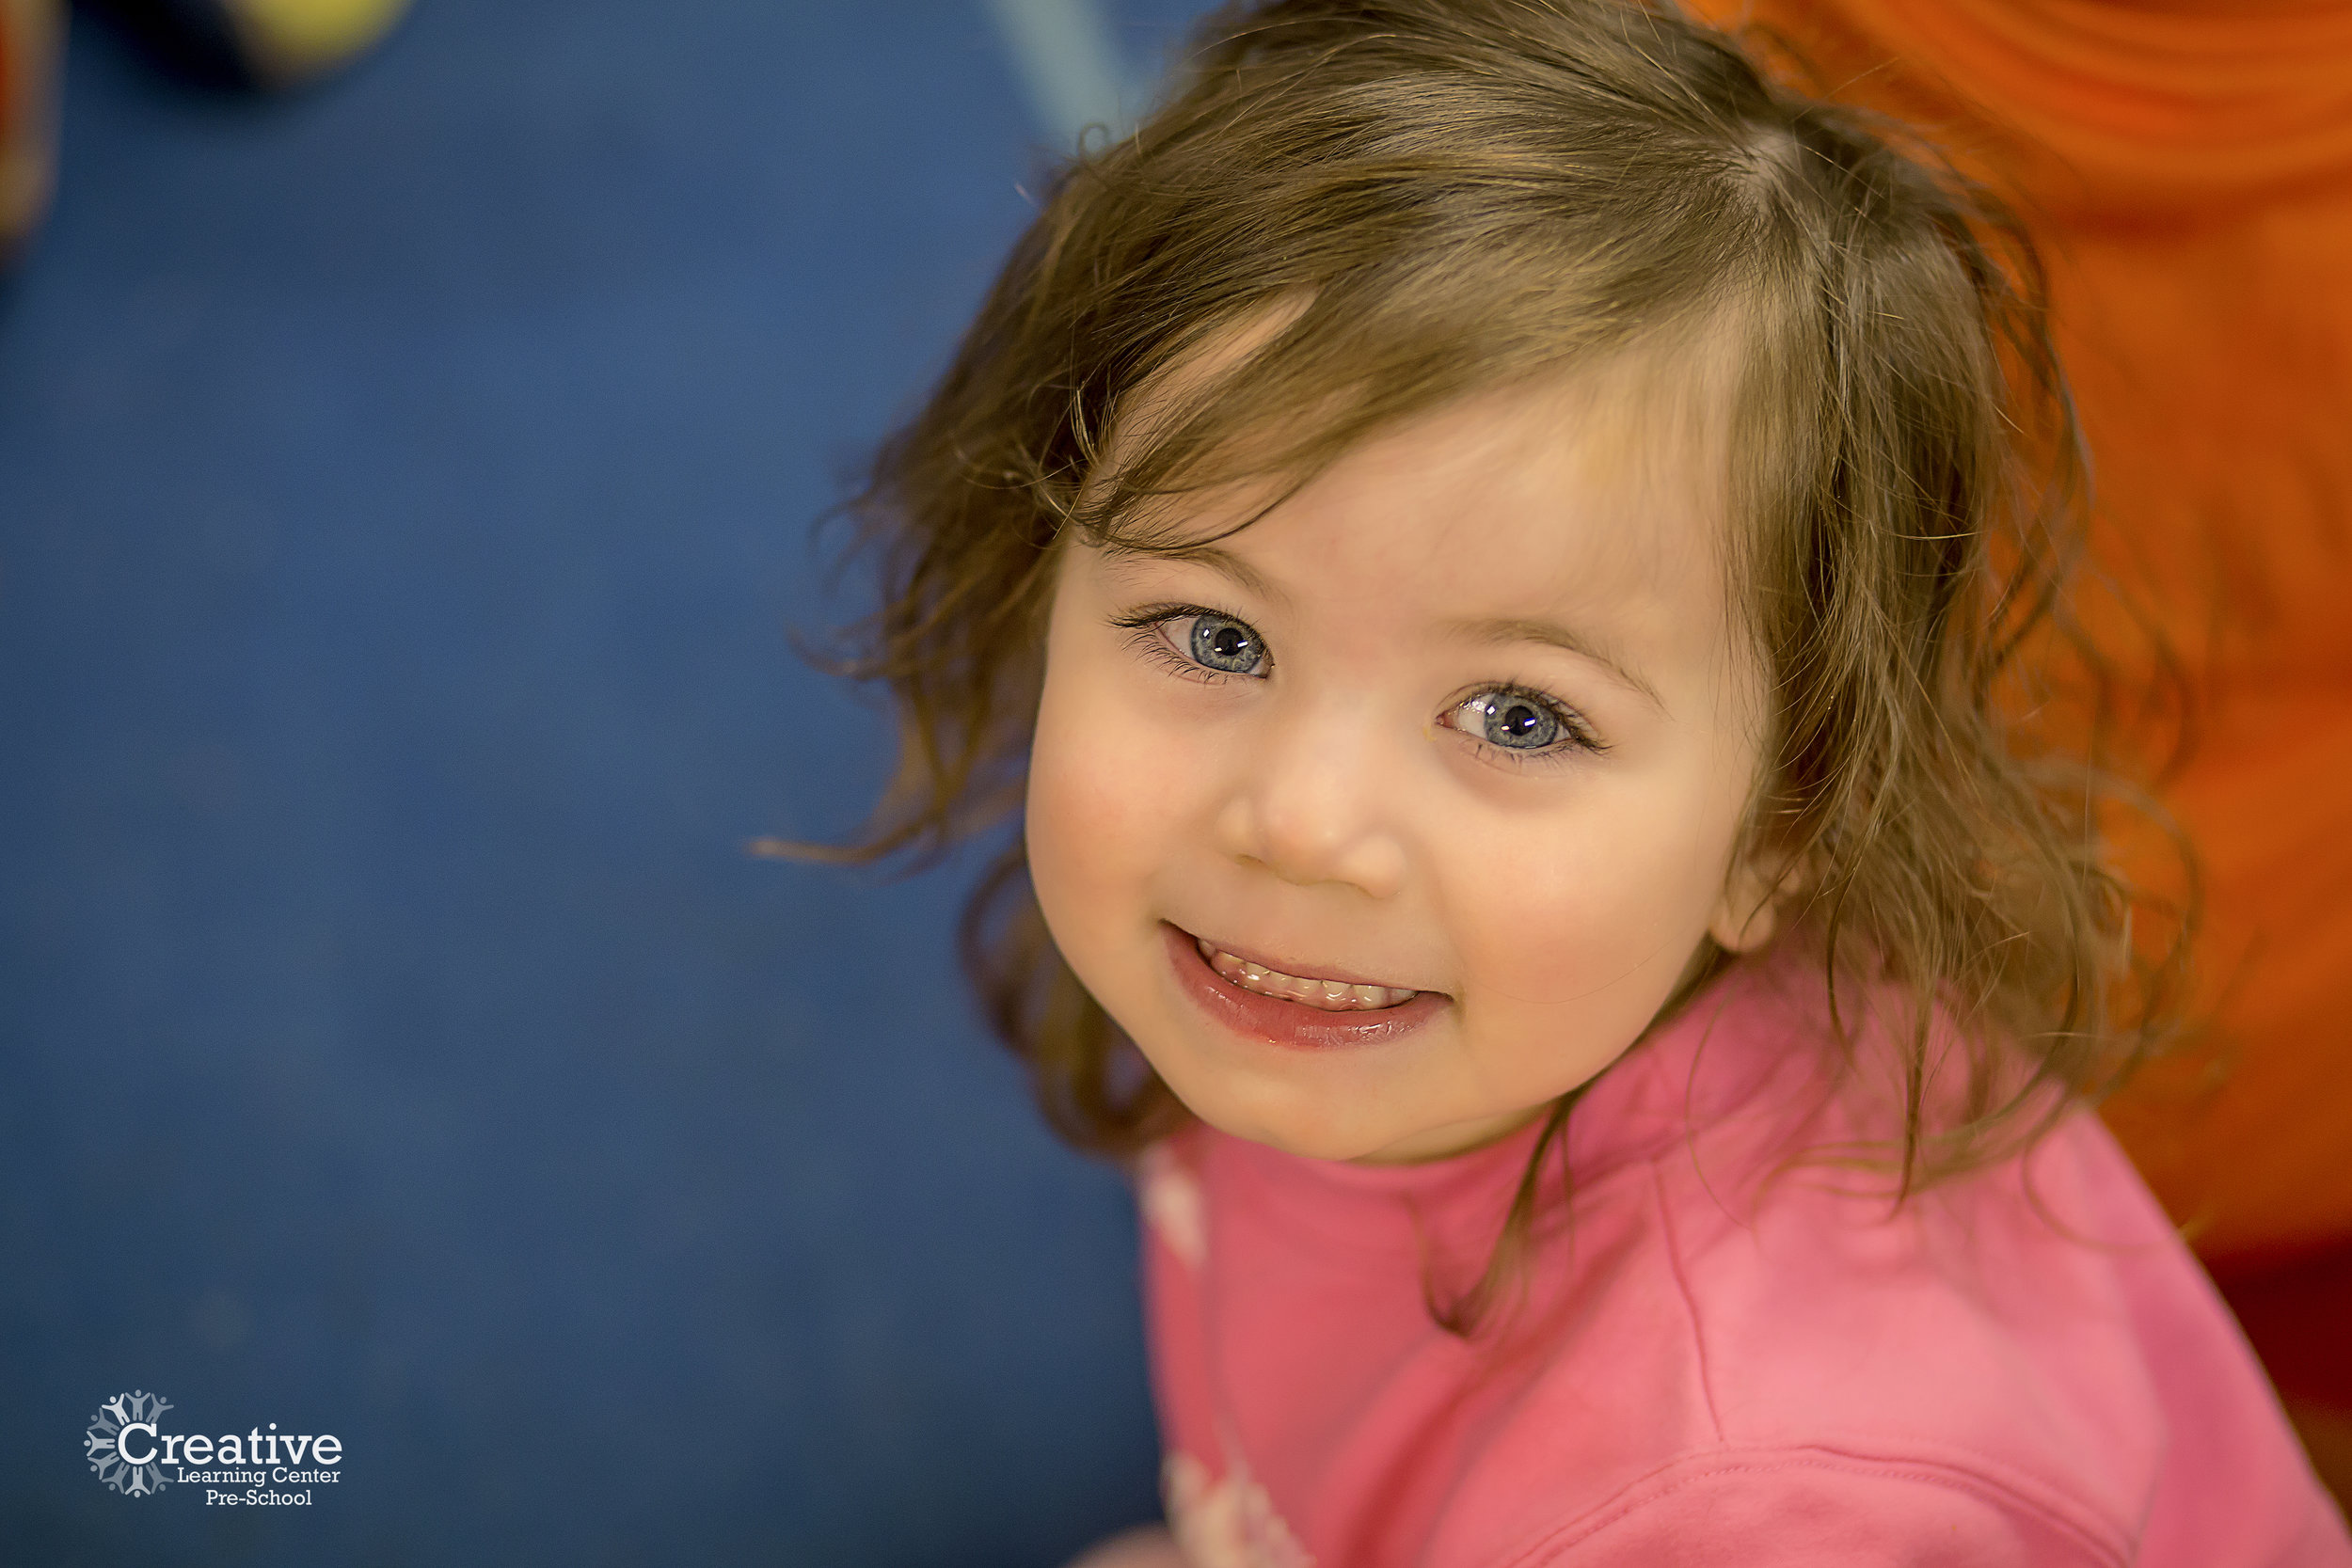 Children's Smiles are the best